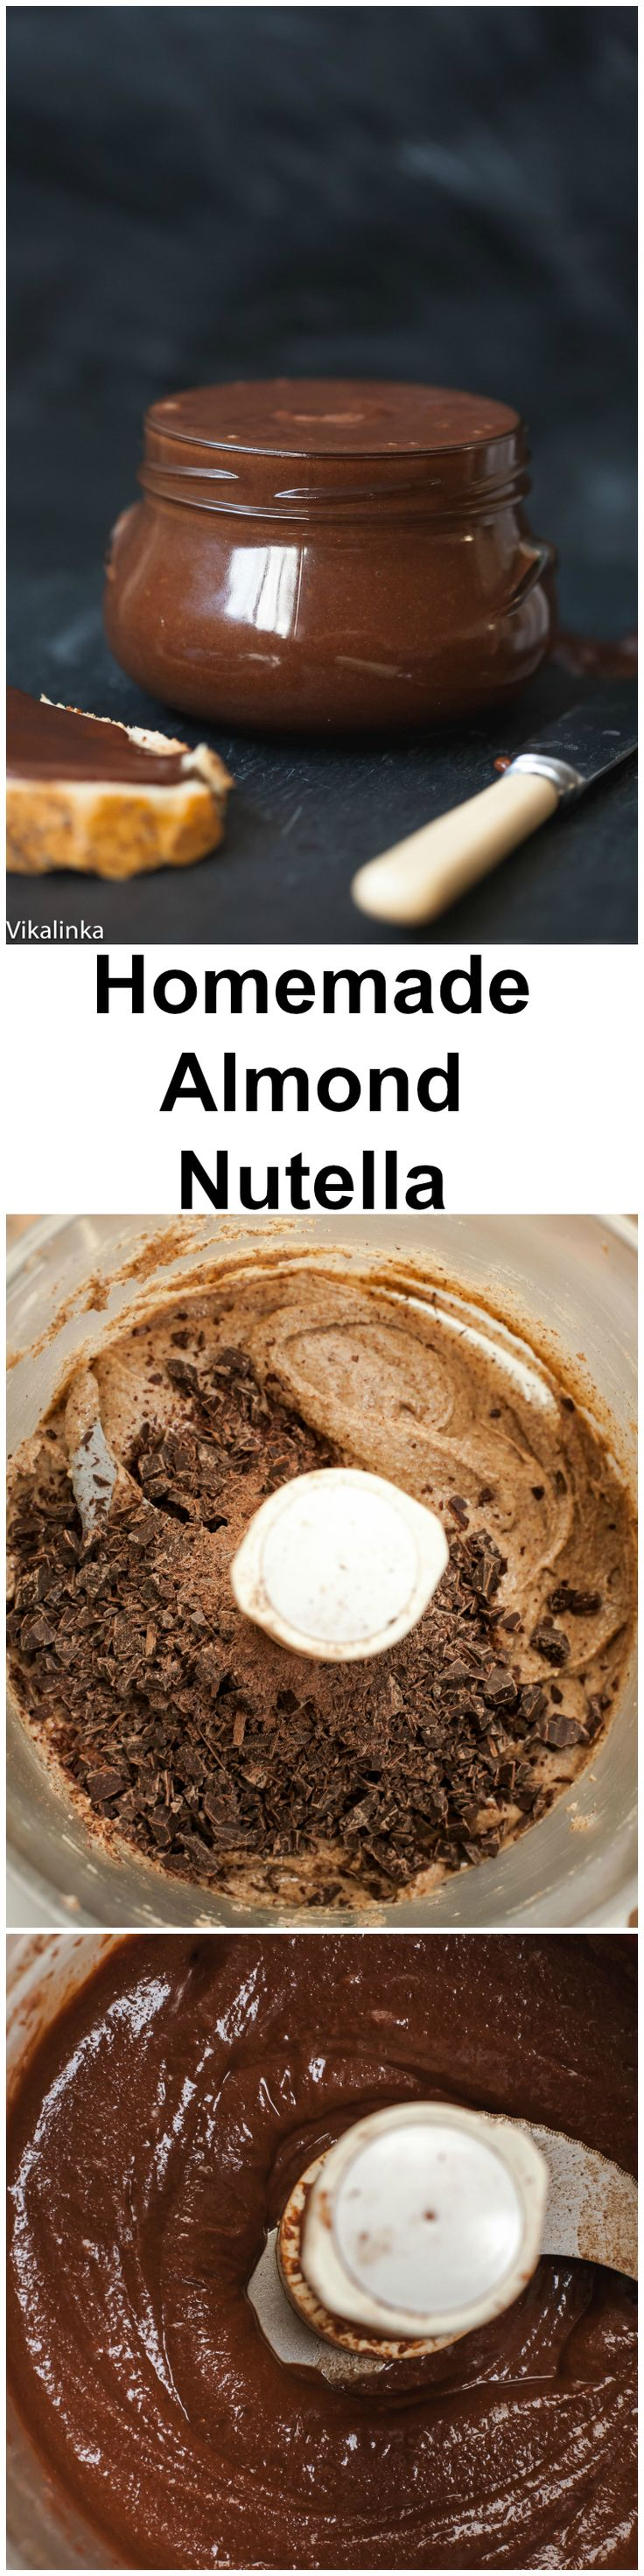 Homemade Almond Nutella (no sugar)-all natural ingredients, heavy on nuts rather than sugar. So delicious!